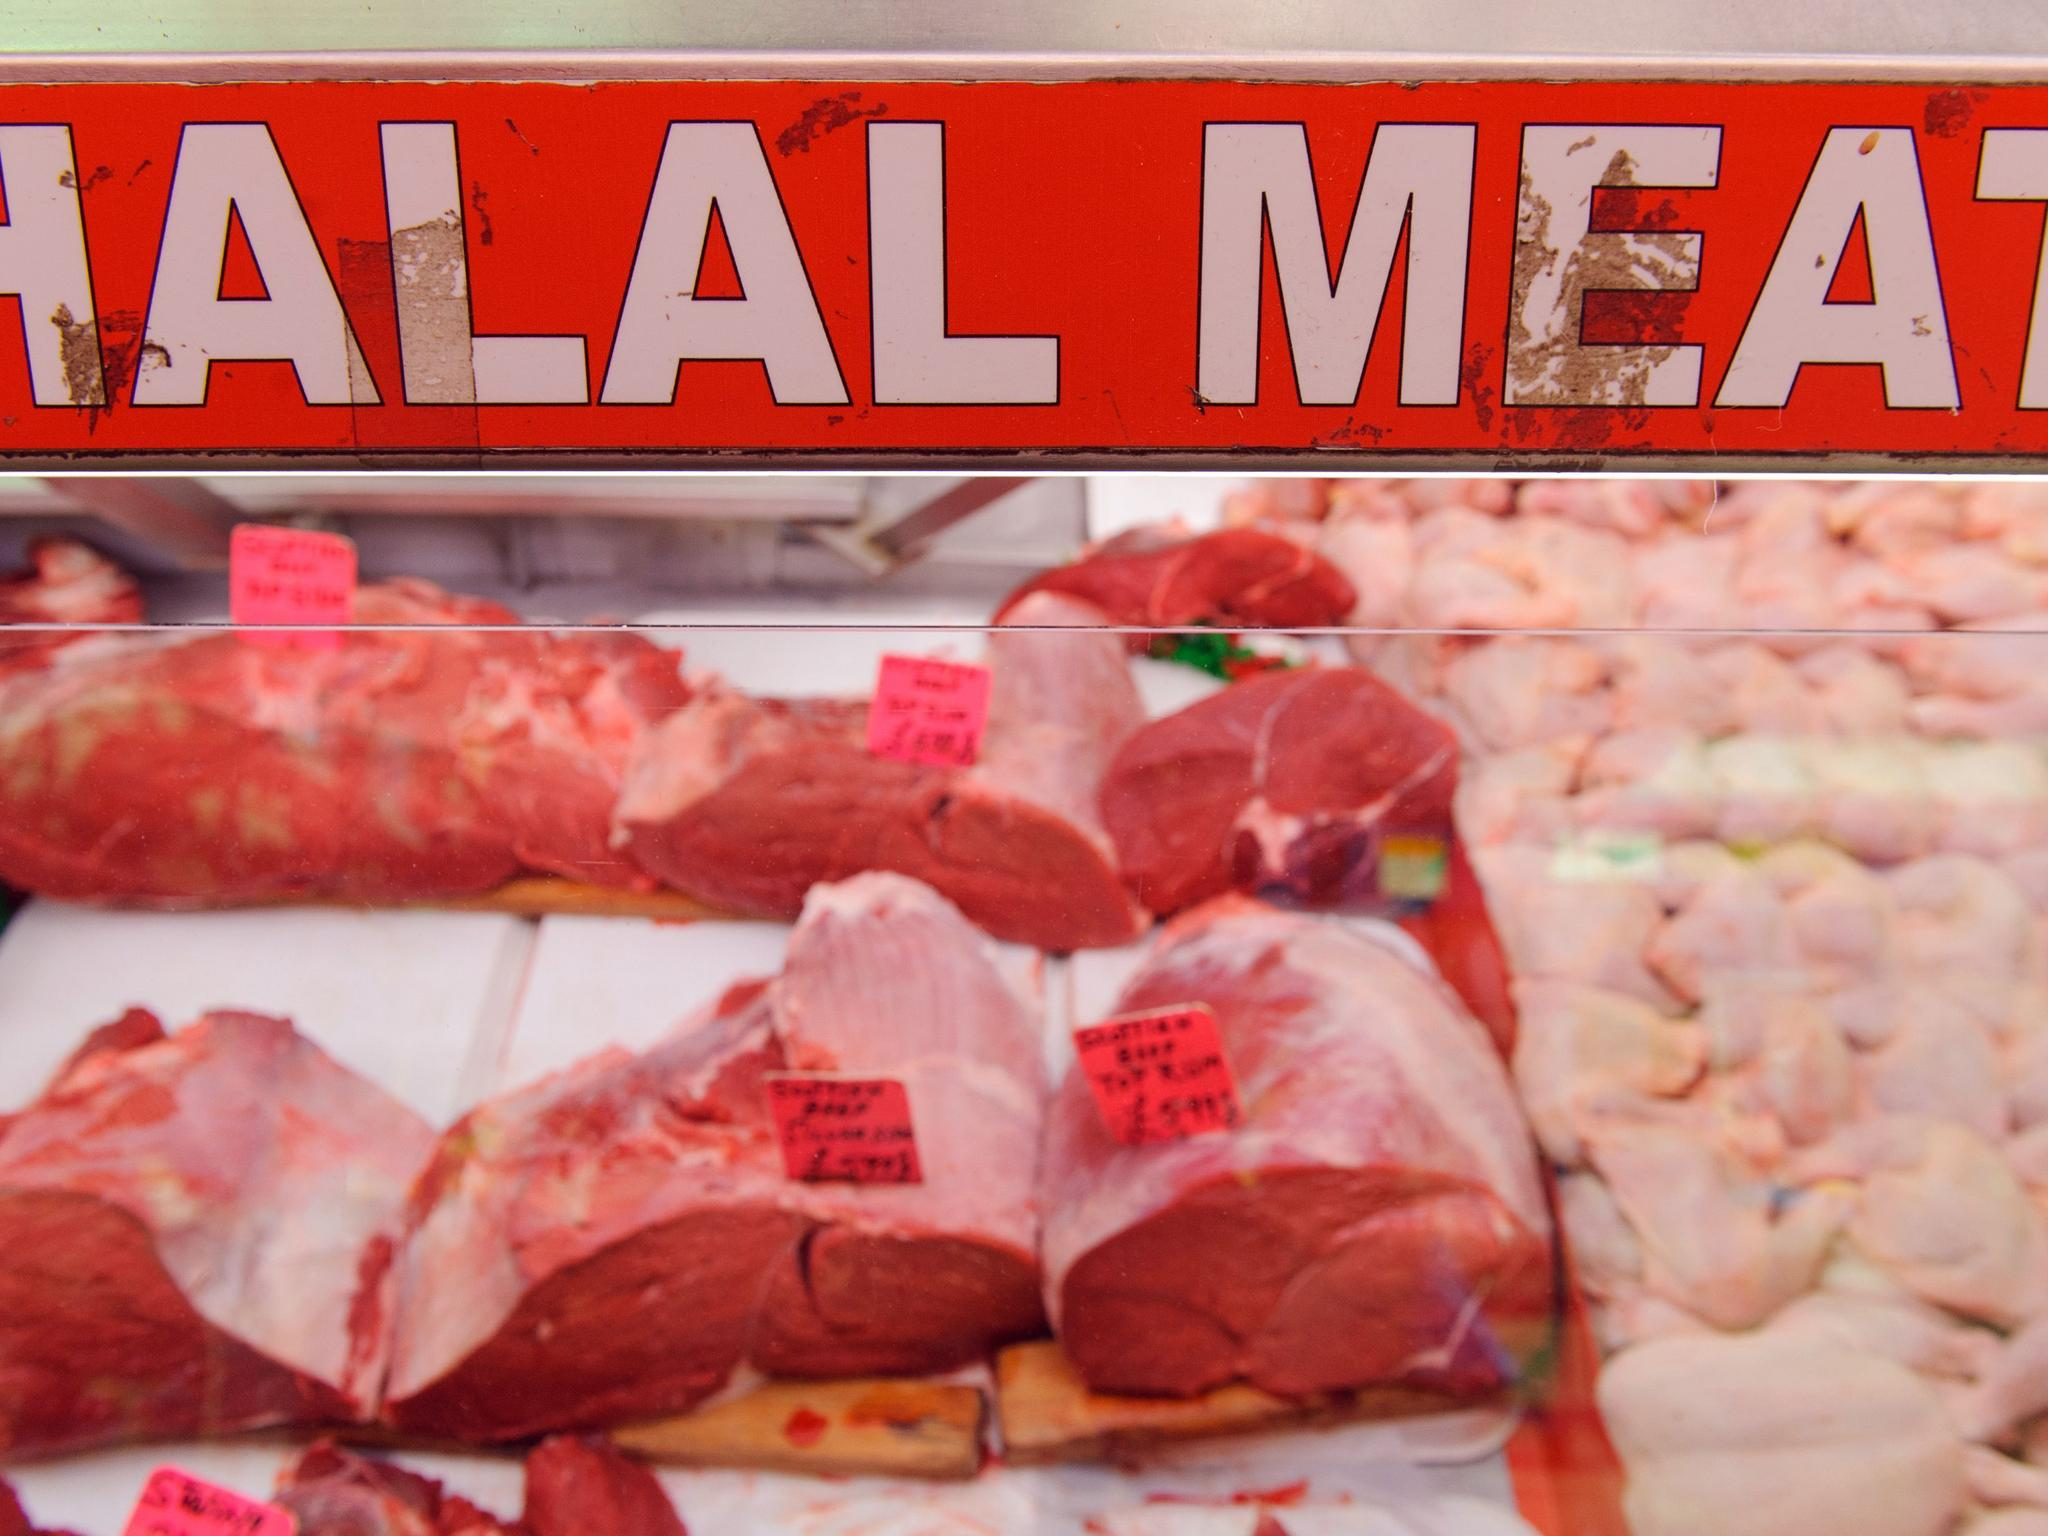 Schools' halal meat ban halted by legal challenge after decision